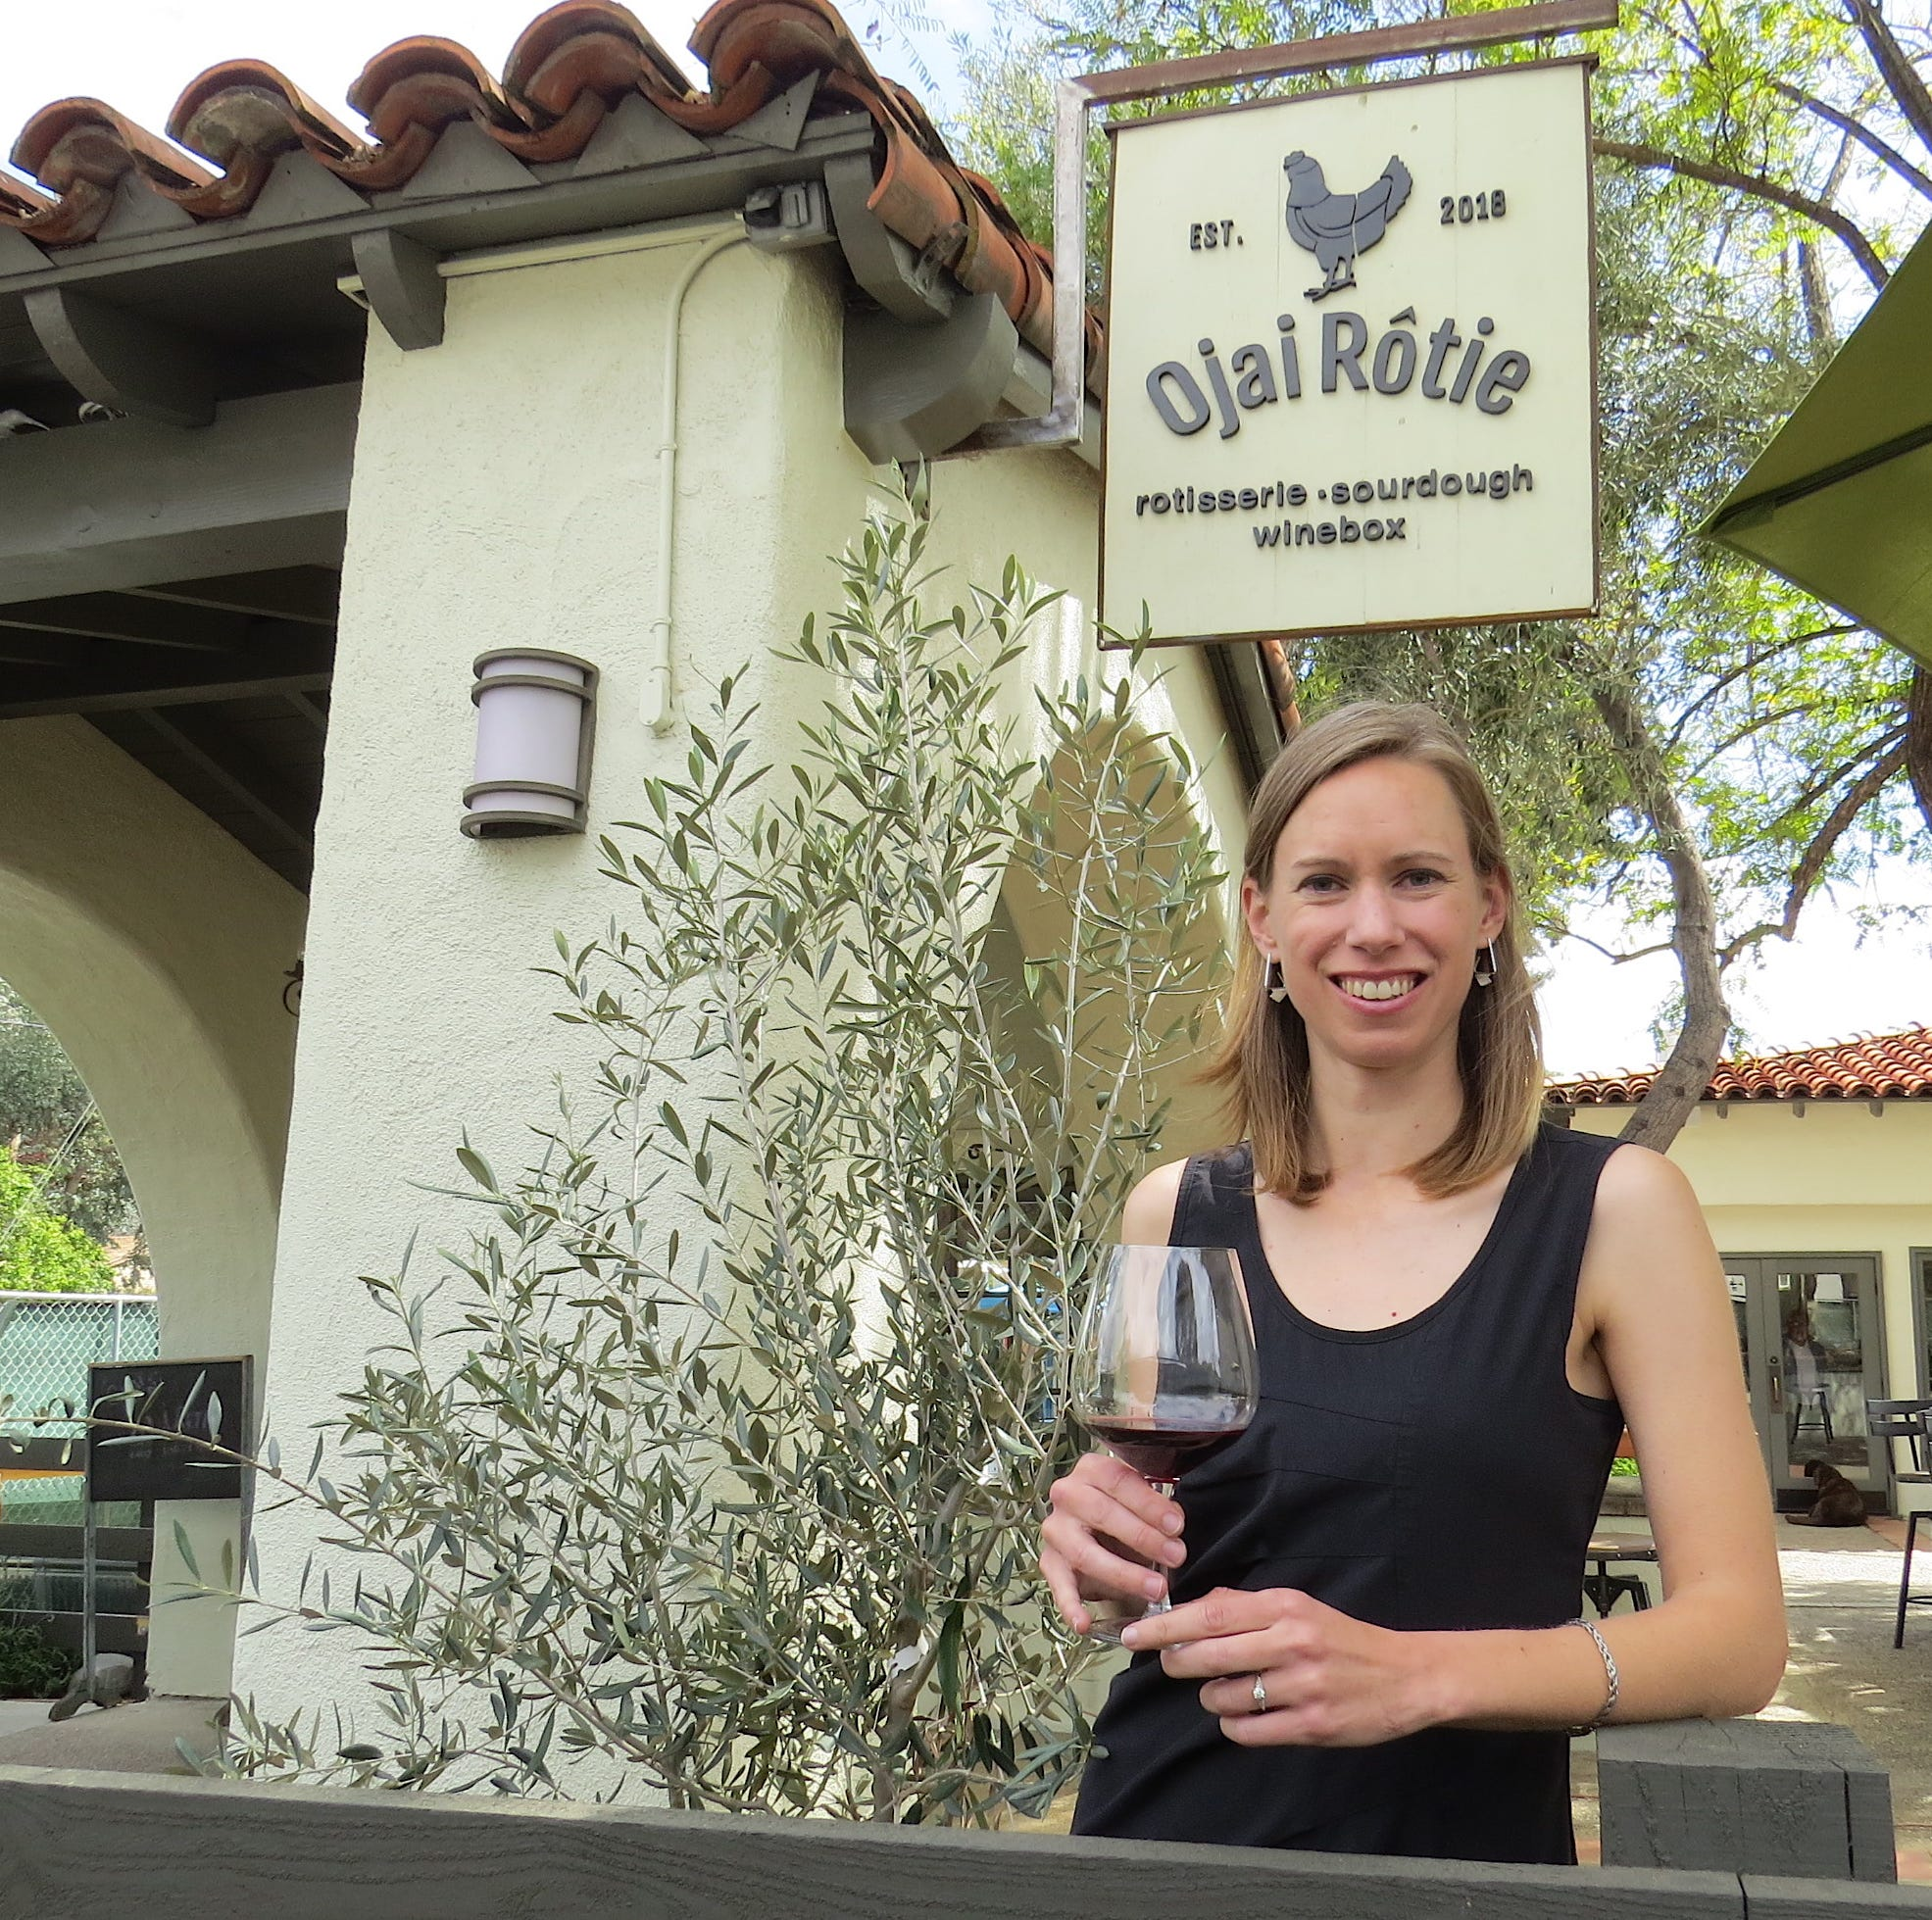 Cafe Society: Ojai Rotie's home-grown sommelier hopes to give diners next-level experience